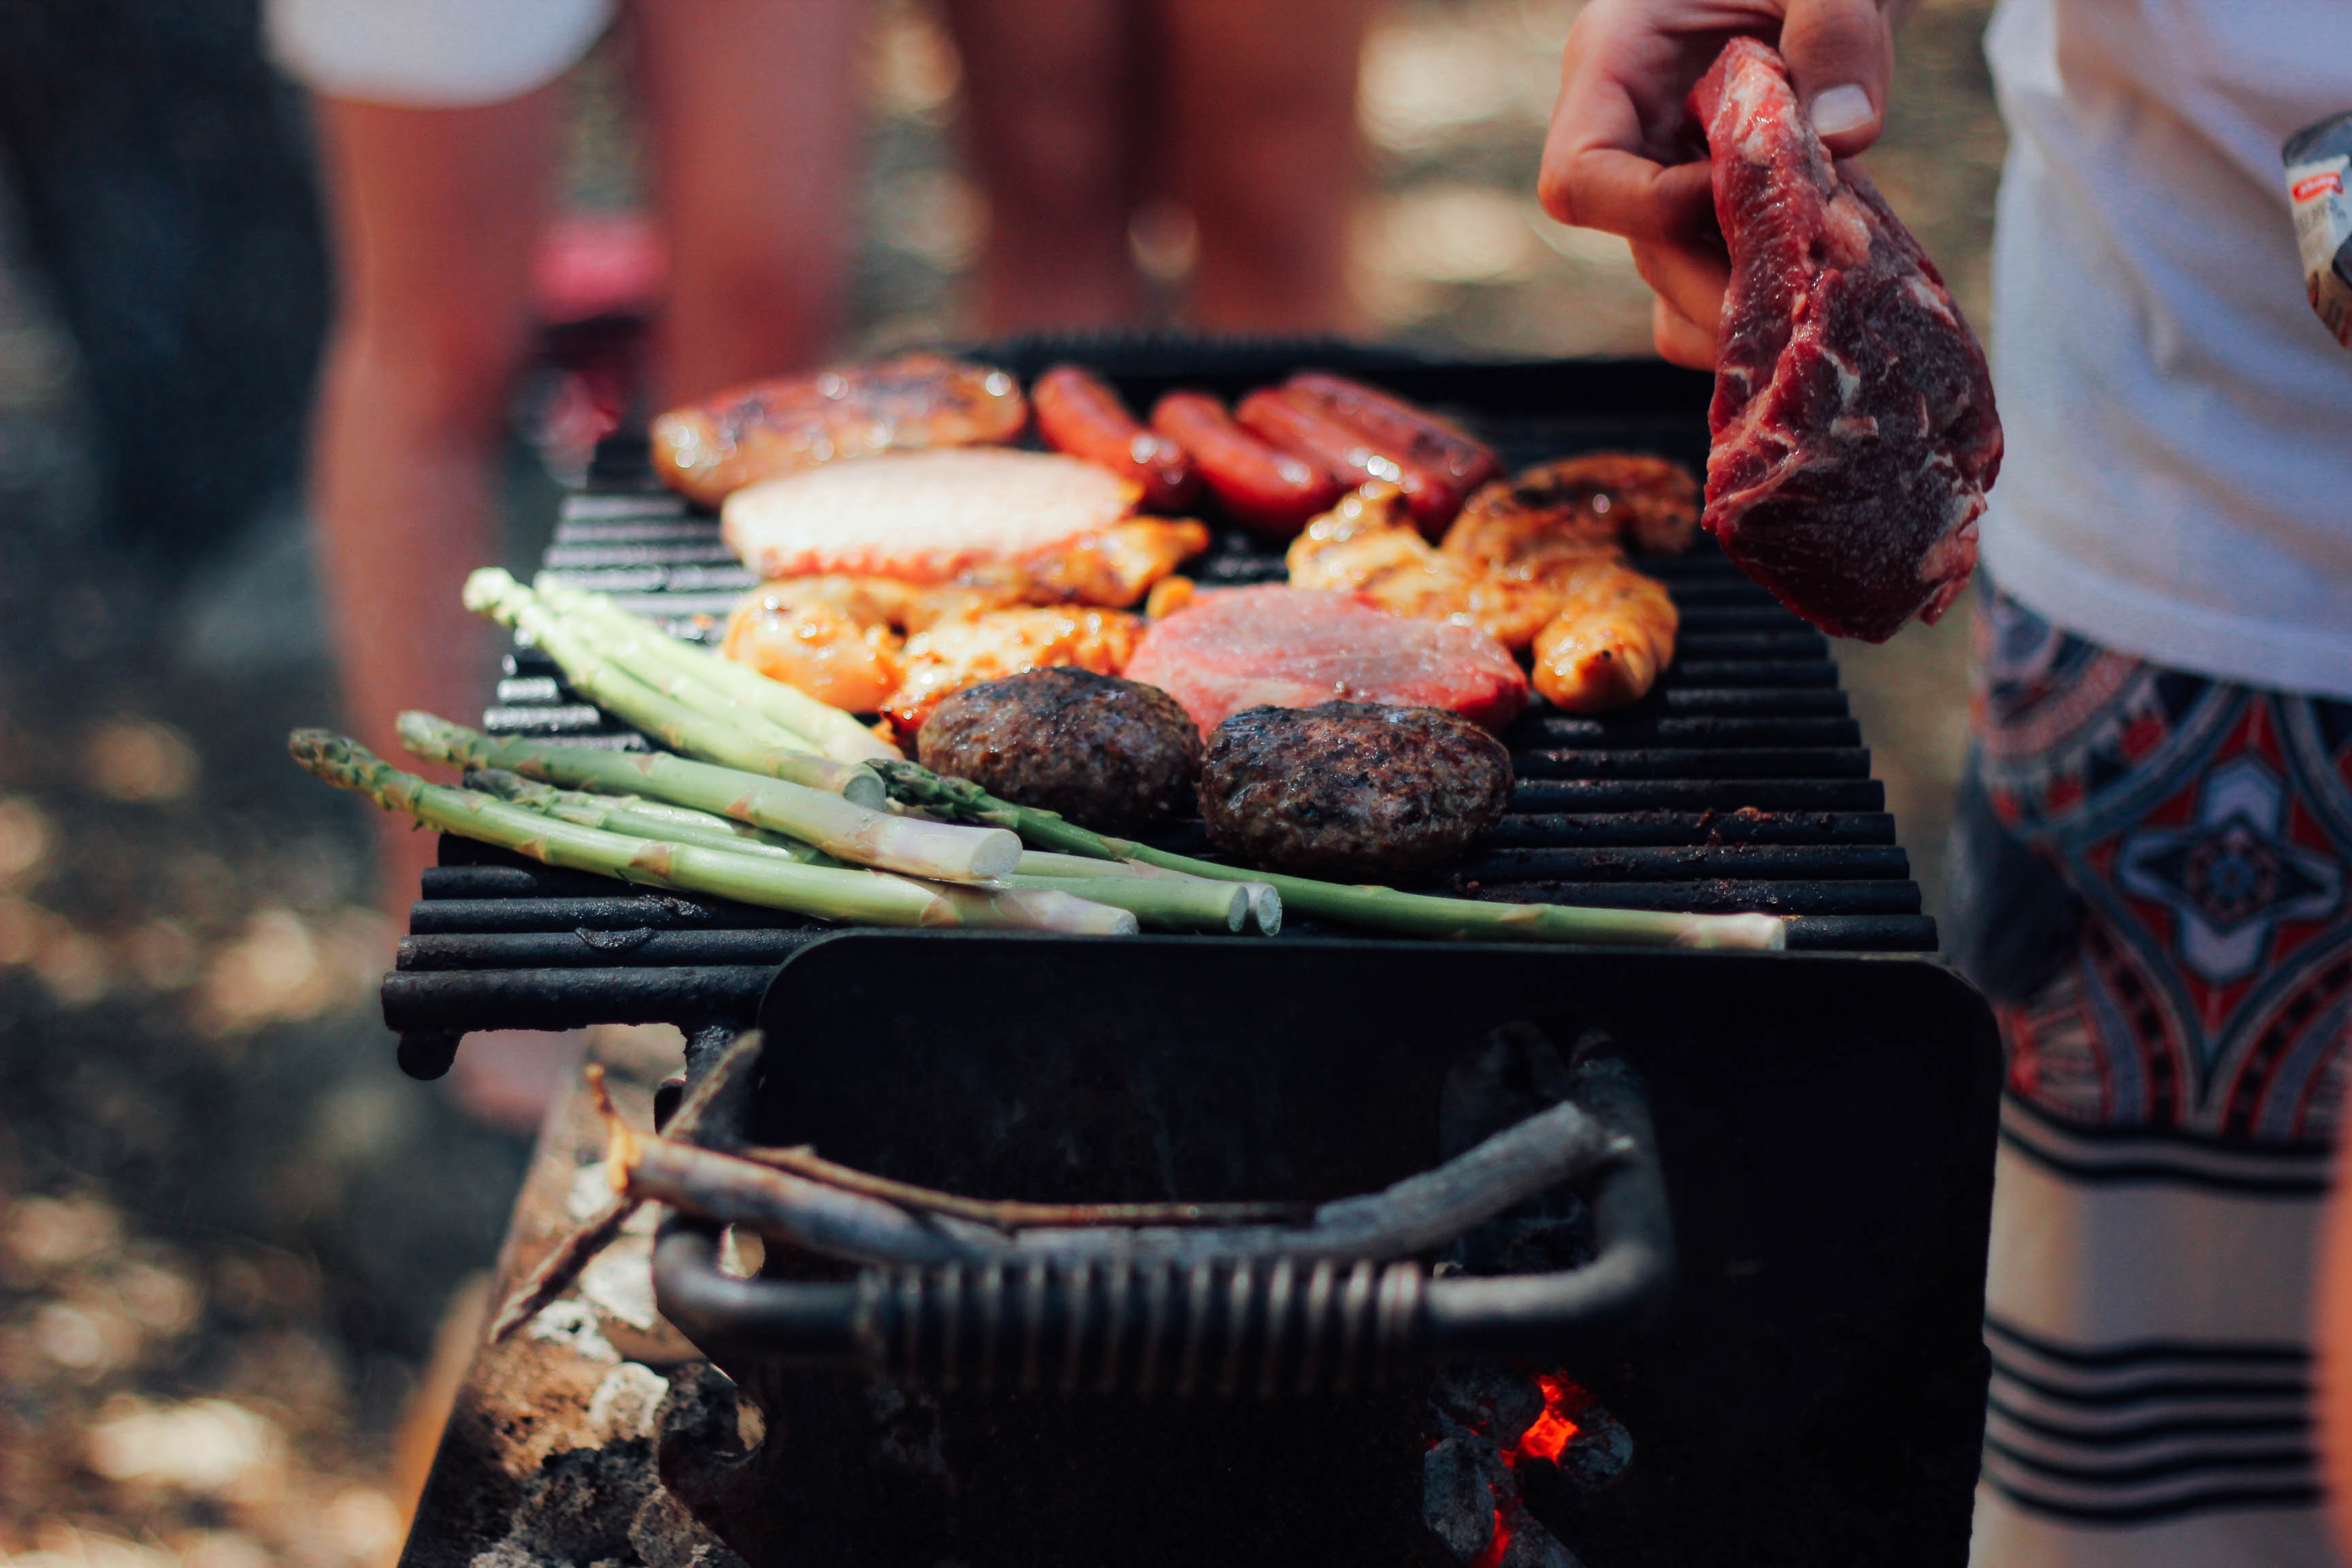 Someone prepares asparagus, steak, burgers, and hot dogs on a charcoal grill outside.